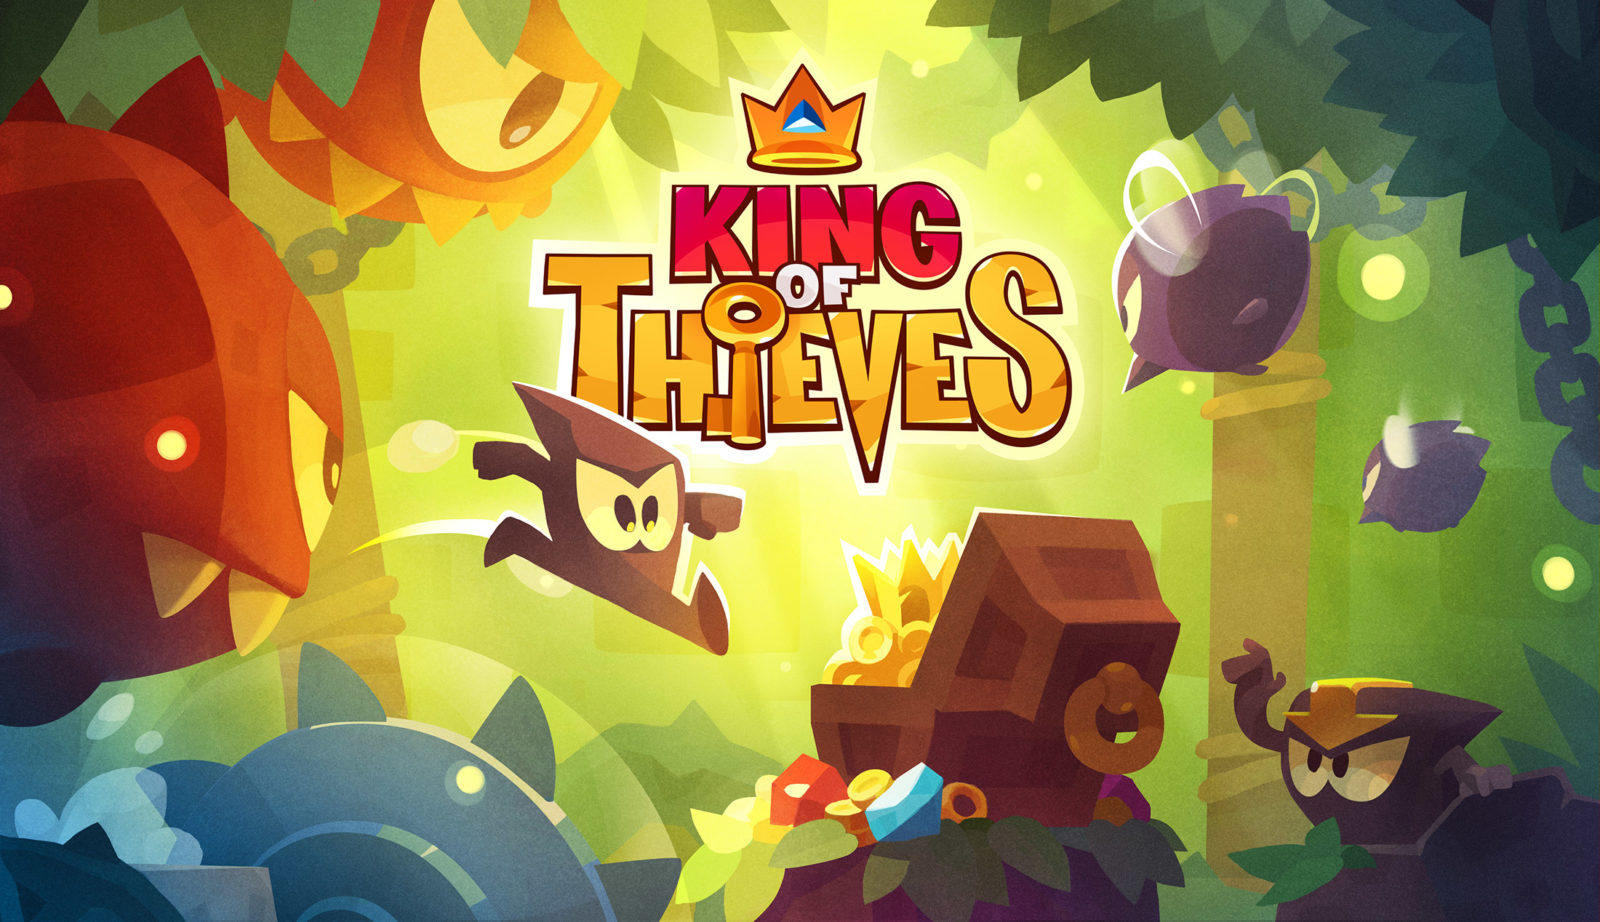 KingofThieves_promoart